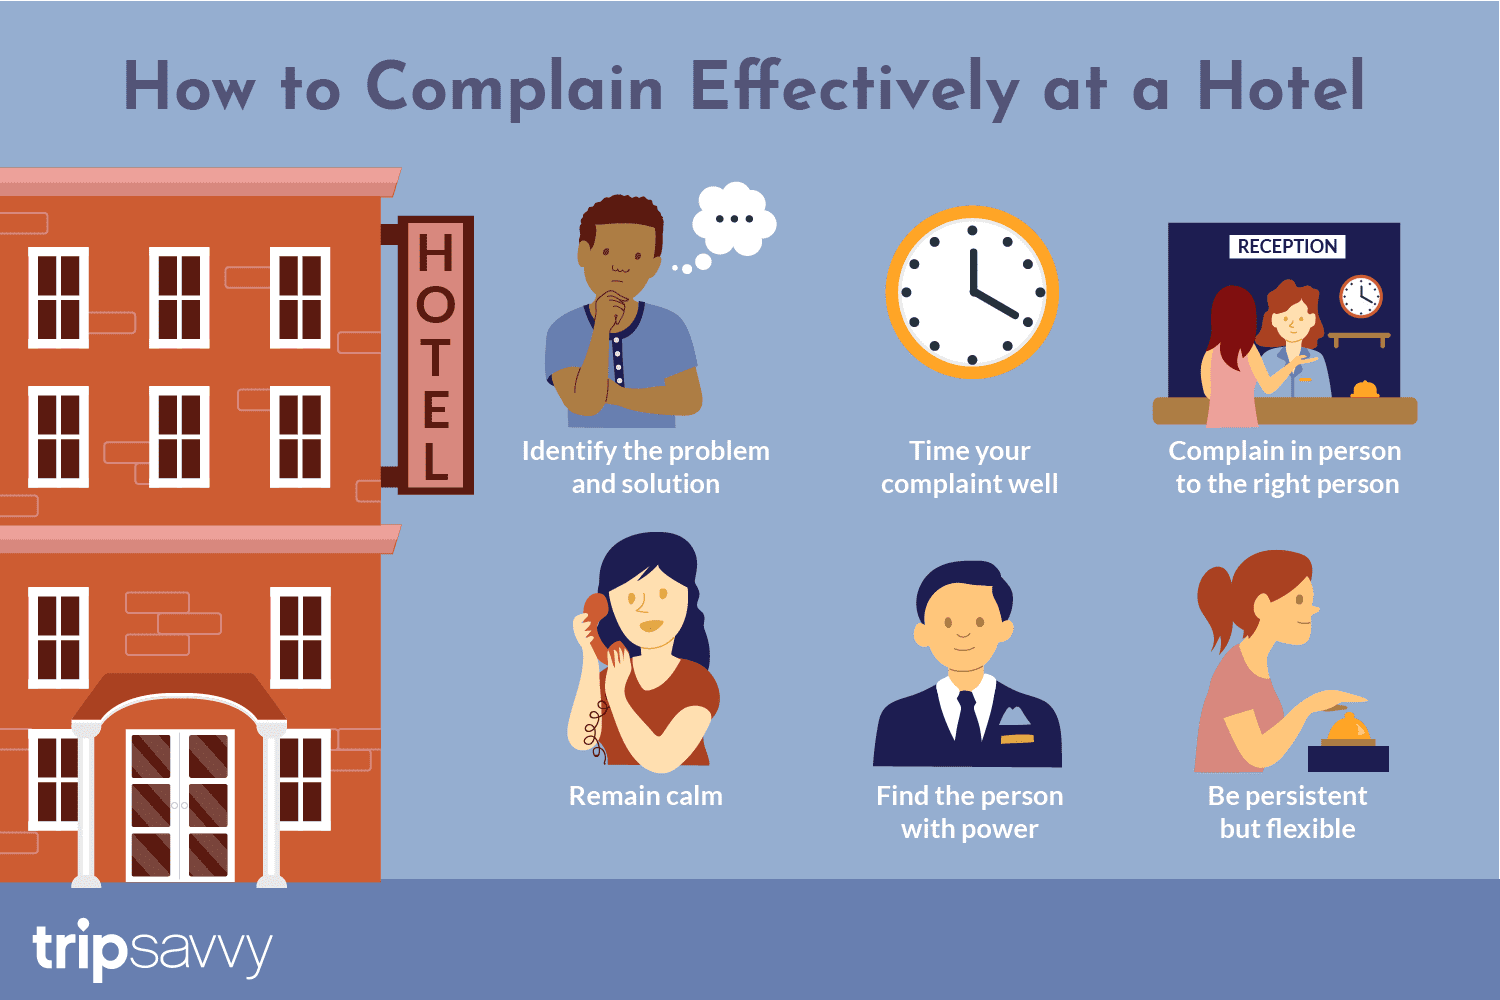 How to Complain Effectively at a Hotel